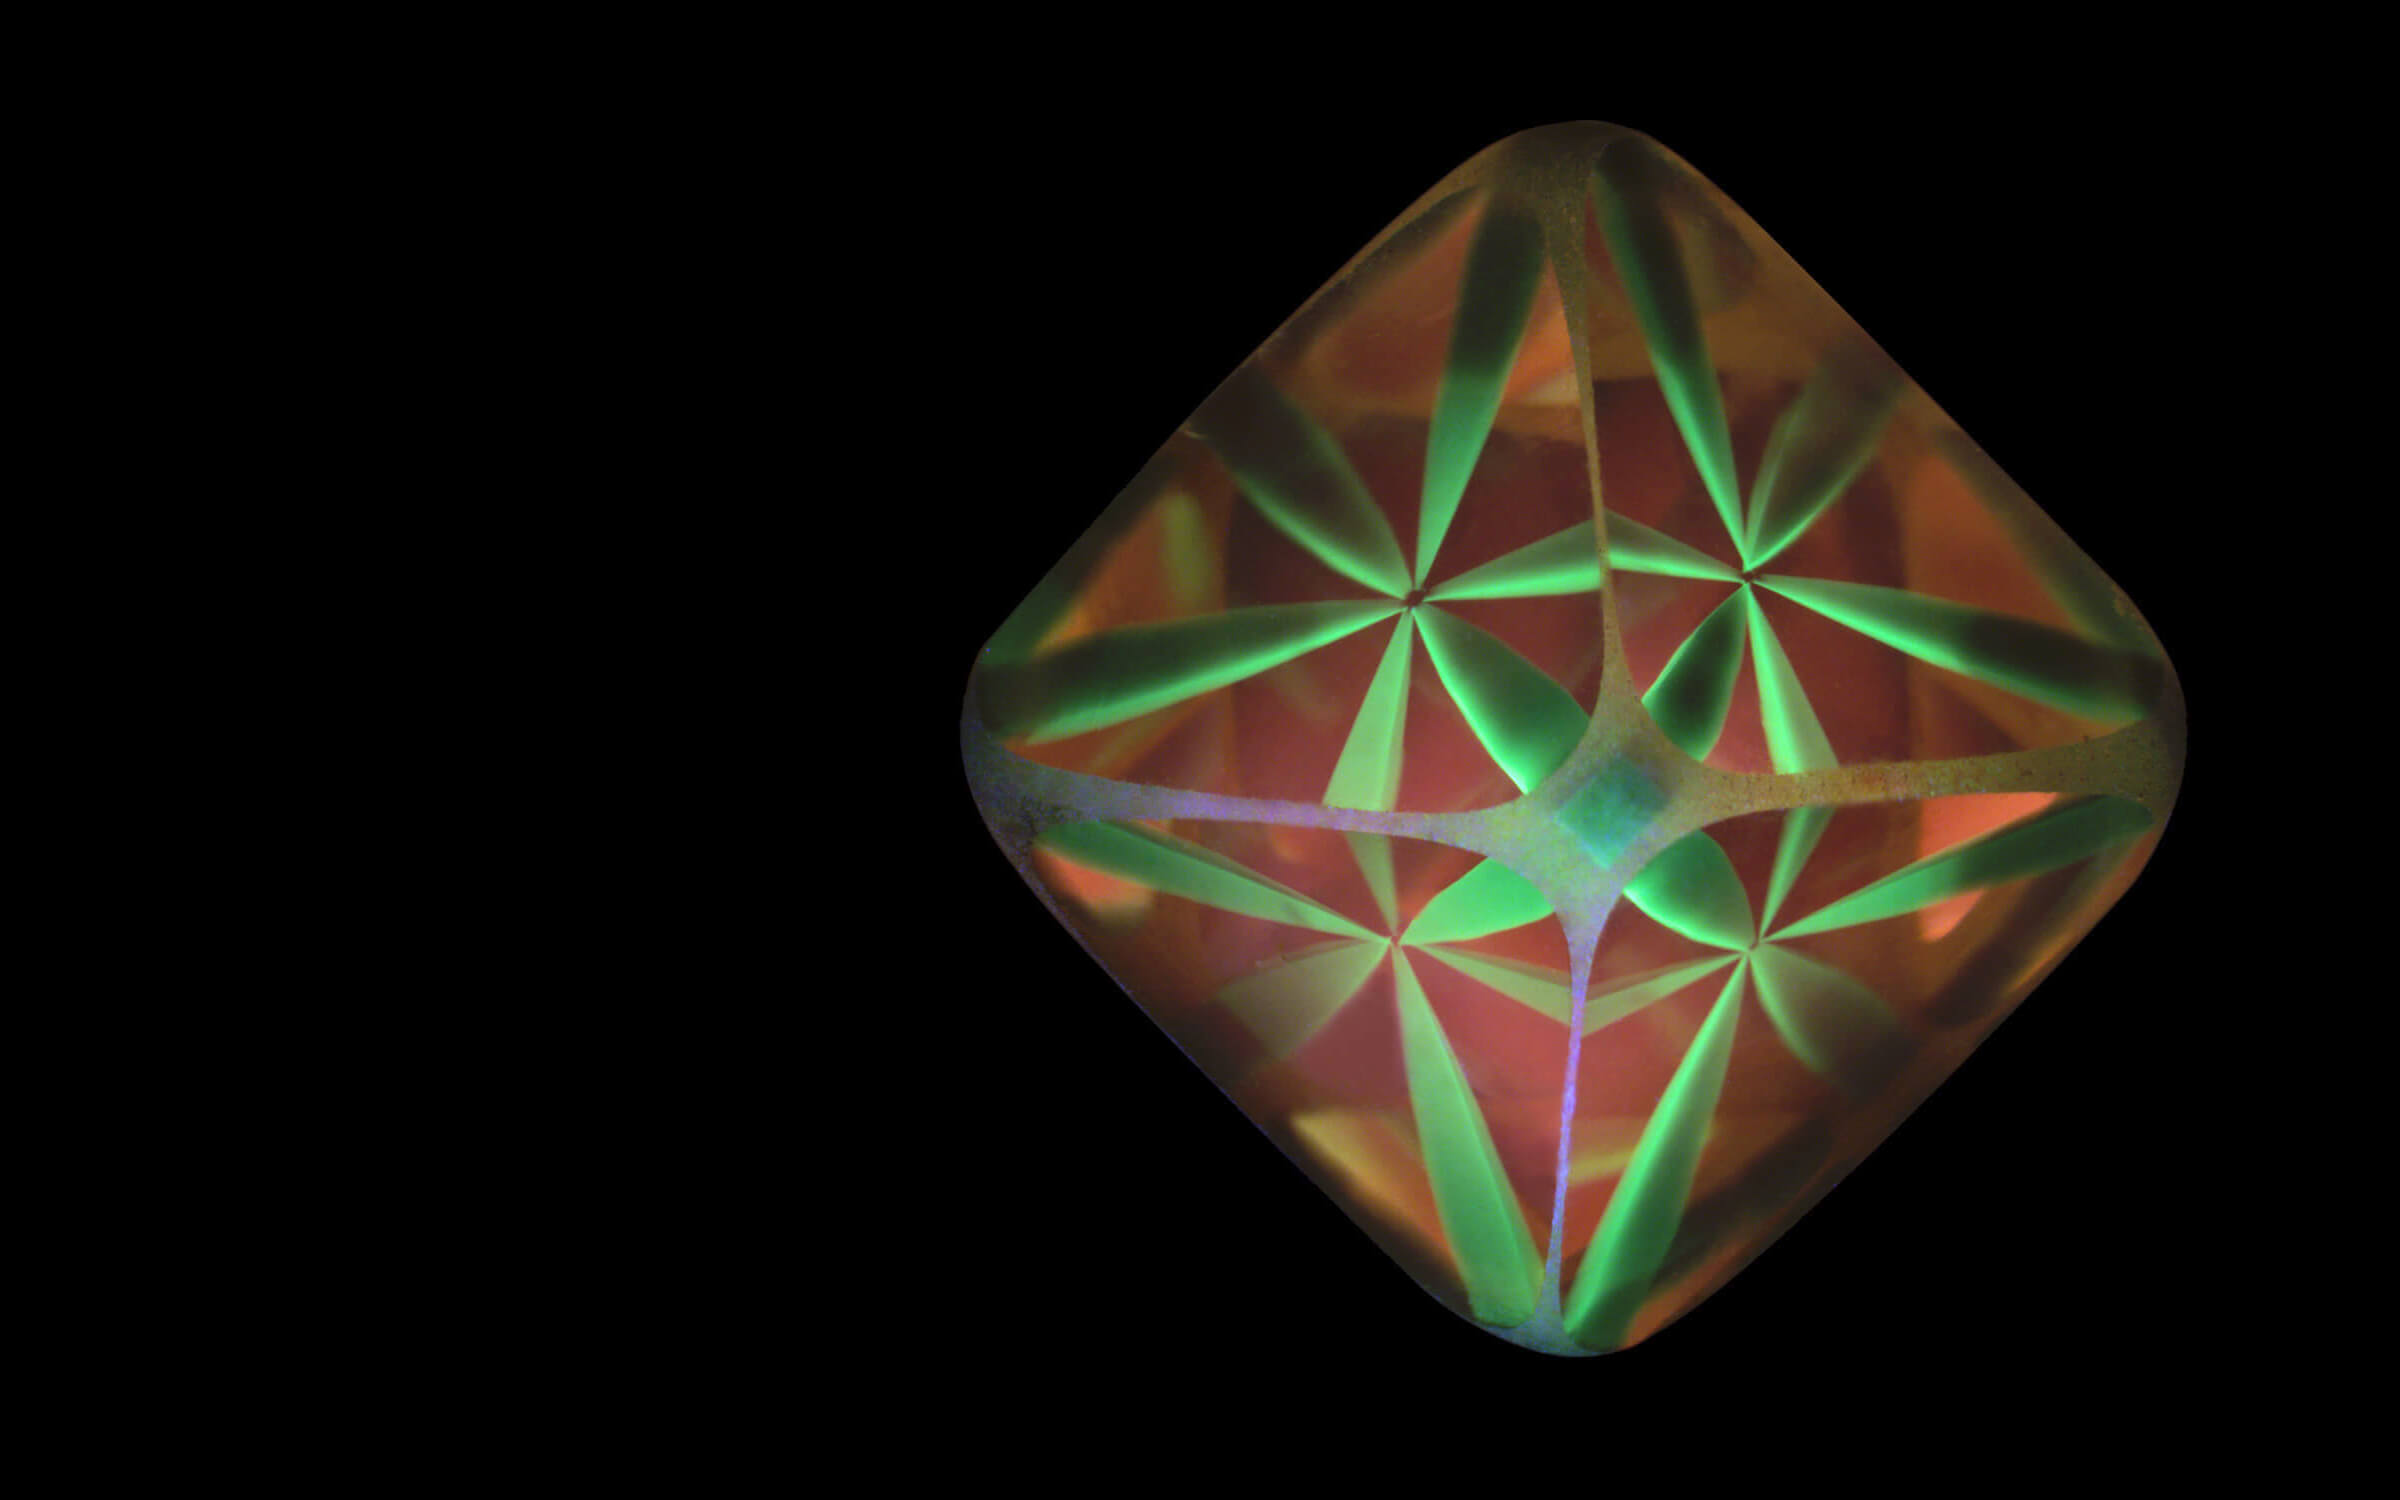 Bi-colour luminescent structure in a rough diamond